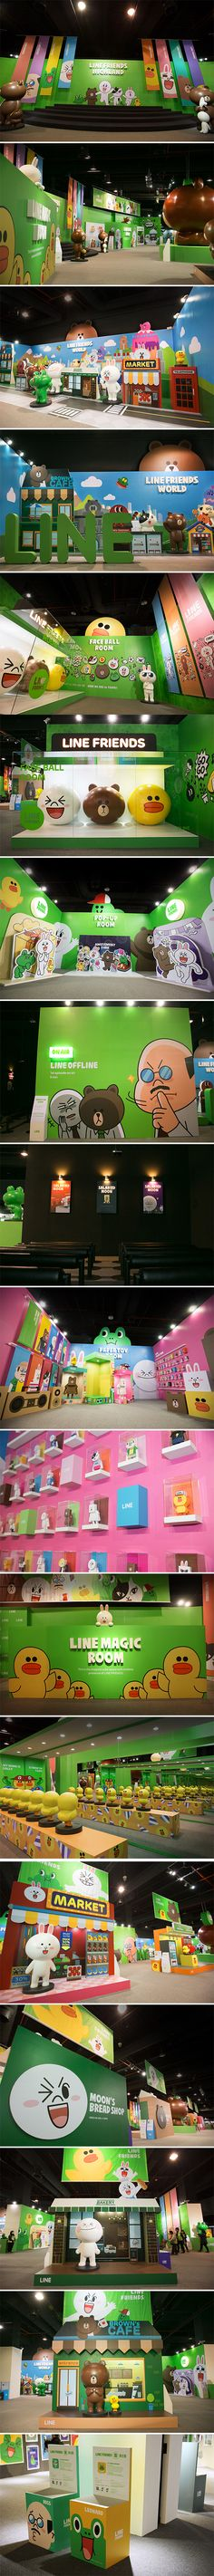 Fun exhibition stand for Line Themepark that includes lots of examples of wide-format print.